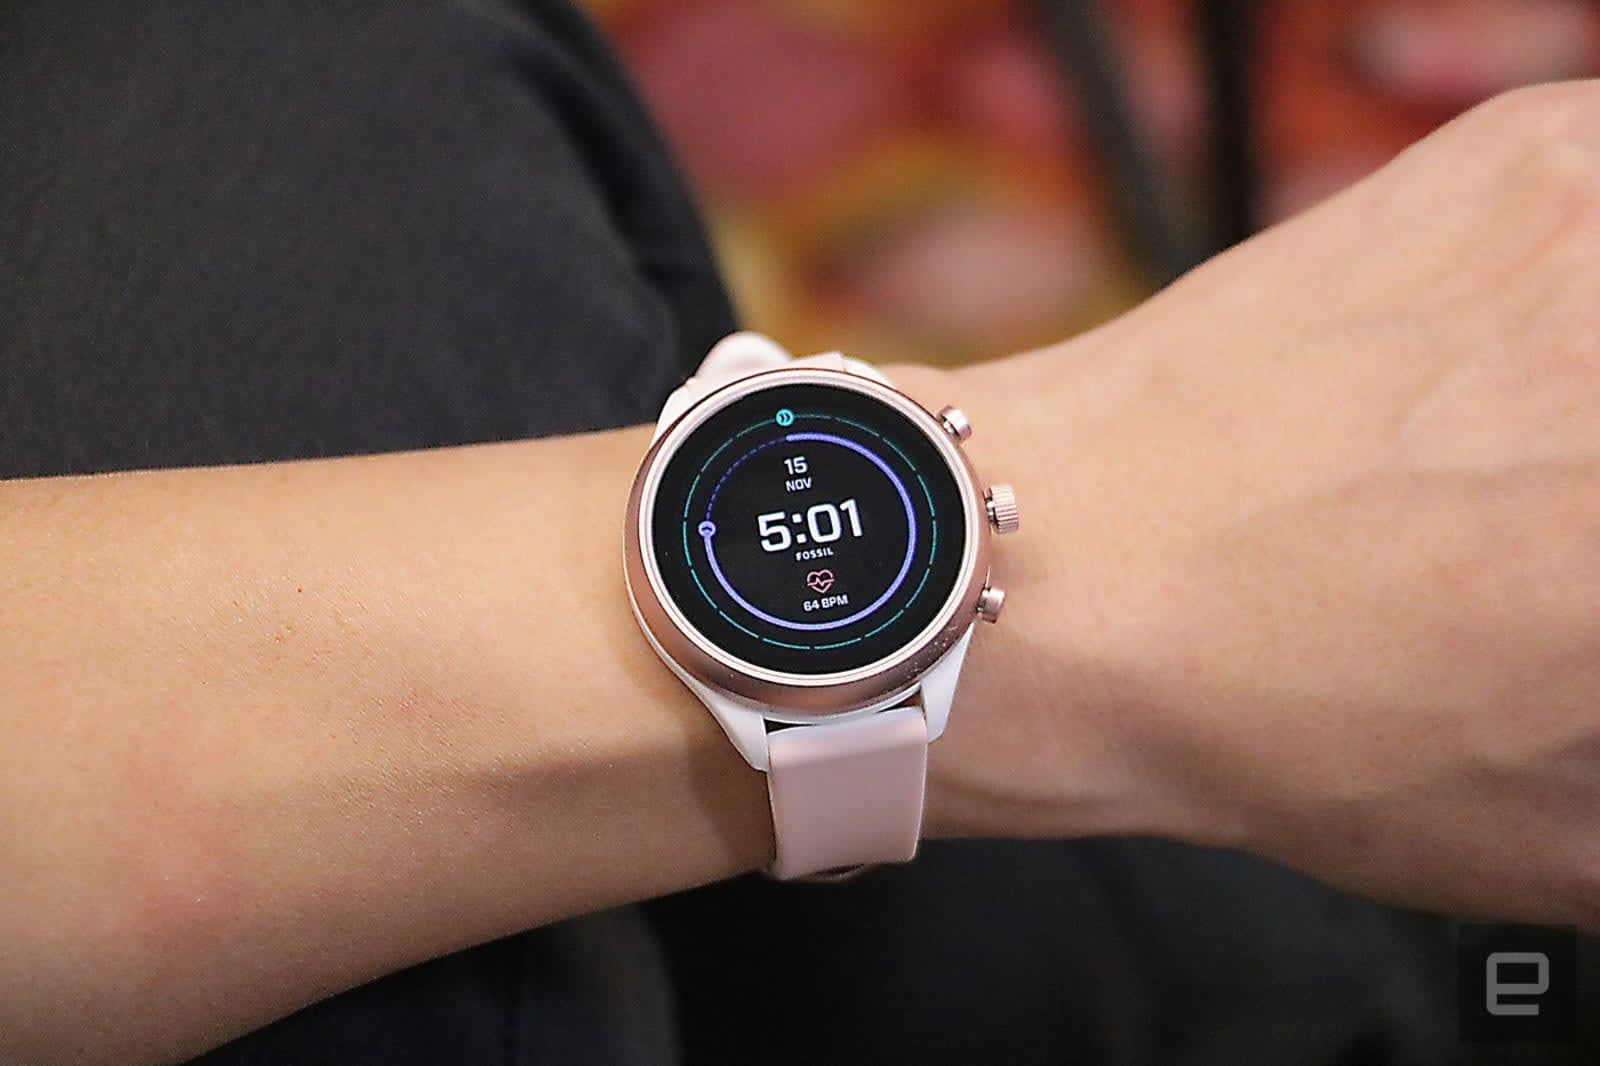 270c5b443 Google will buy Fossil smartwatch tech for $40 million